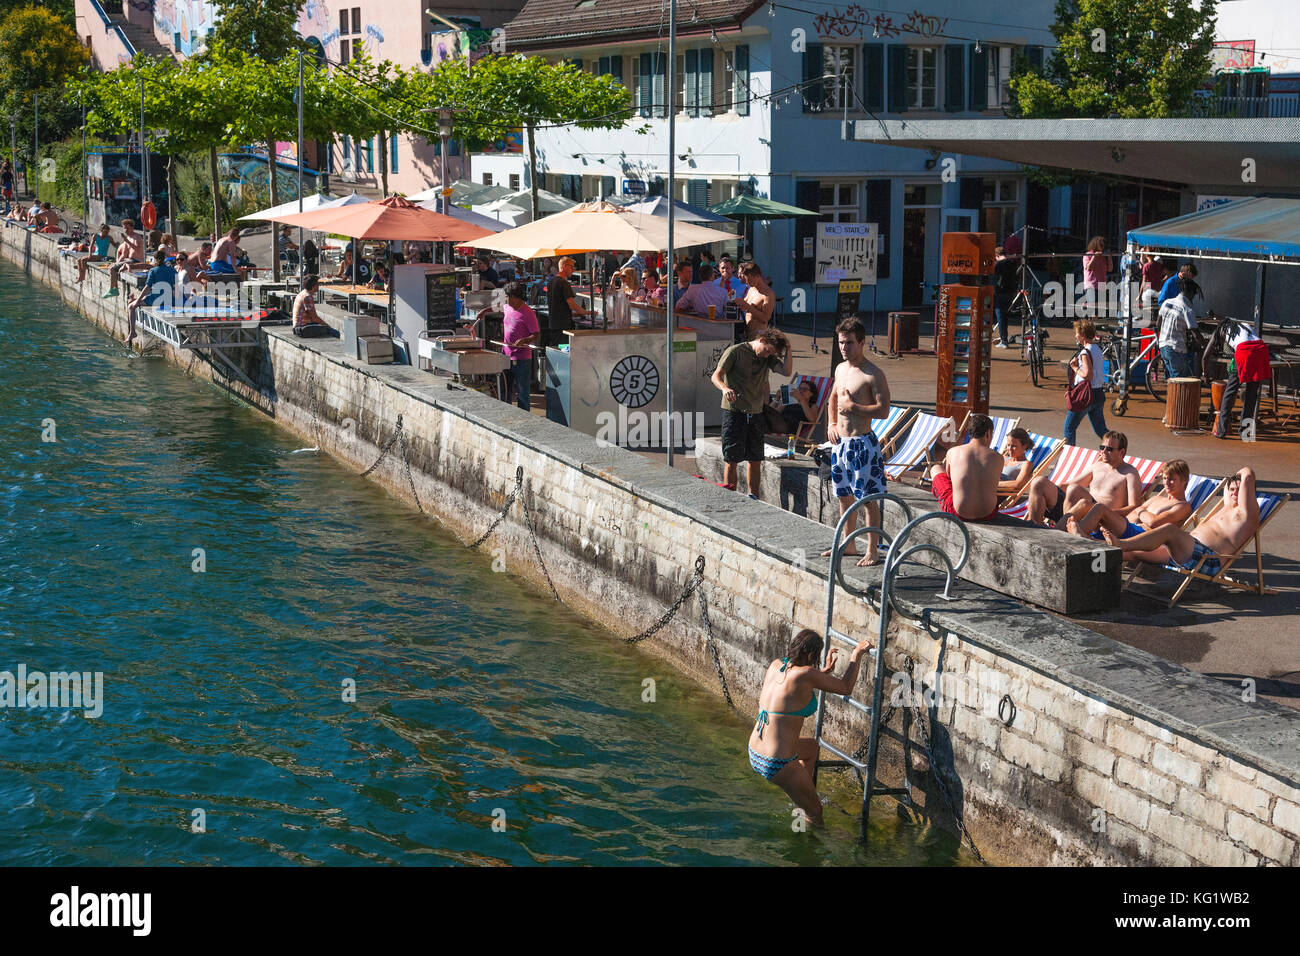 Gartentische Zürich Gartenrestaurant Stock Photos Gartenrestaurant Stock Images Alamy